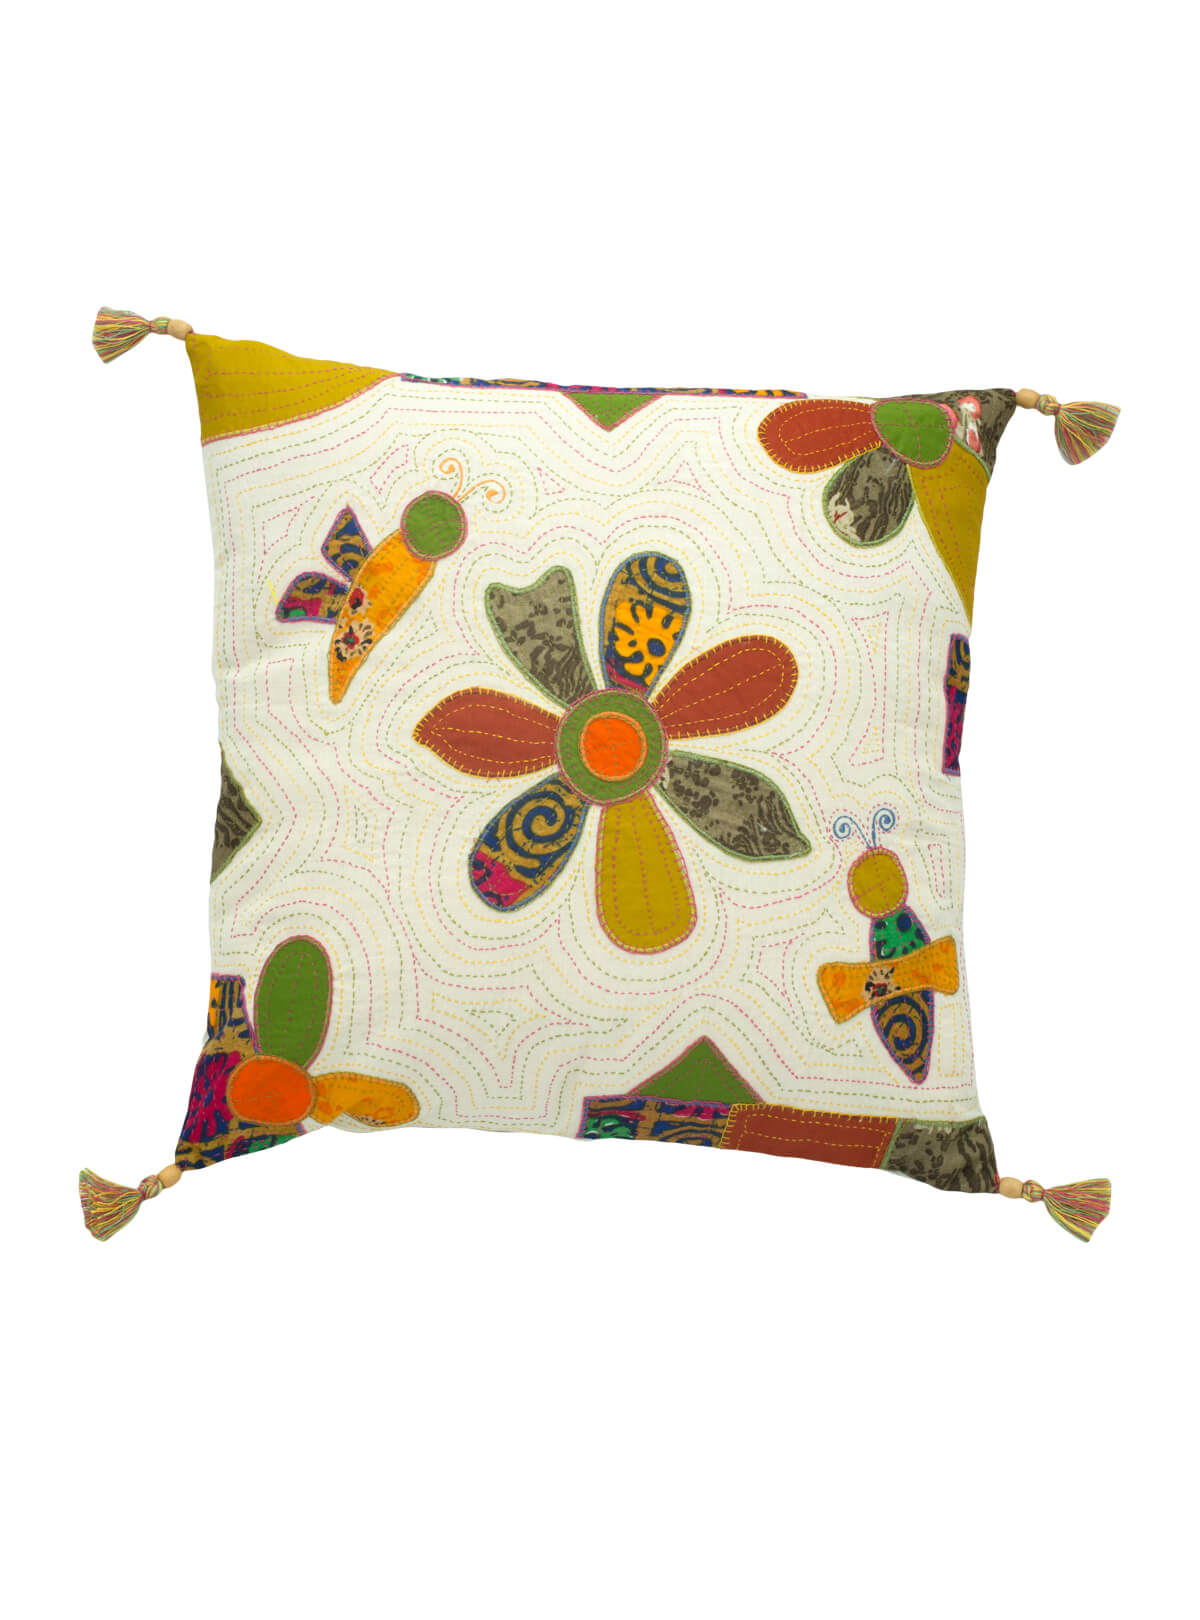 Handmade Patchwork Cotton Cushion Cover